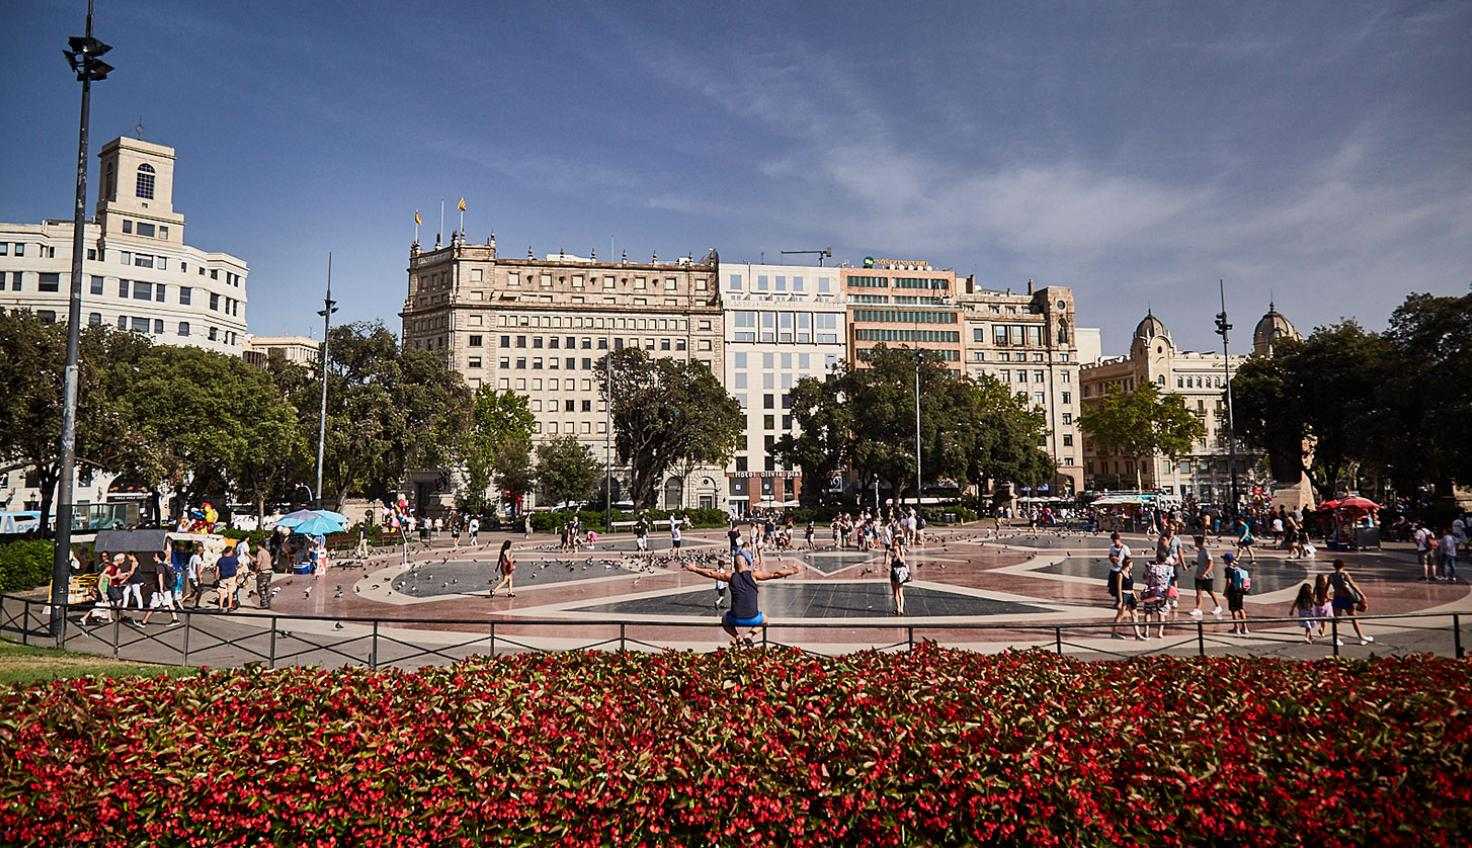 Nexus of the Old Town and the Eixample district